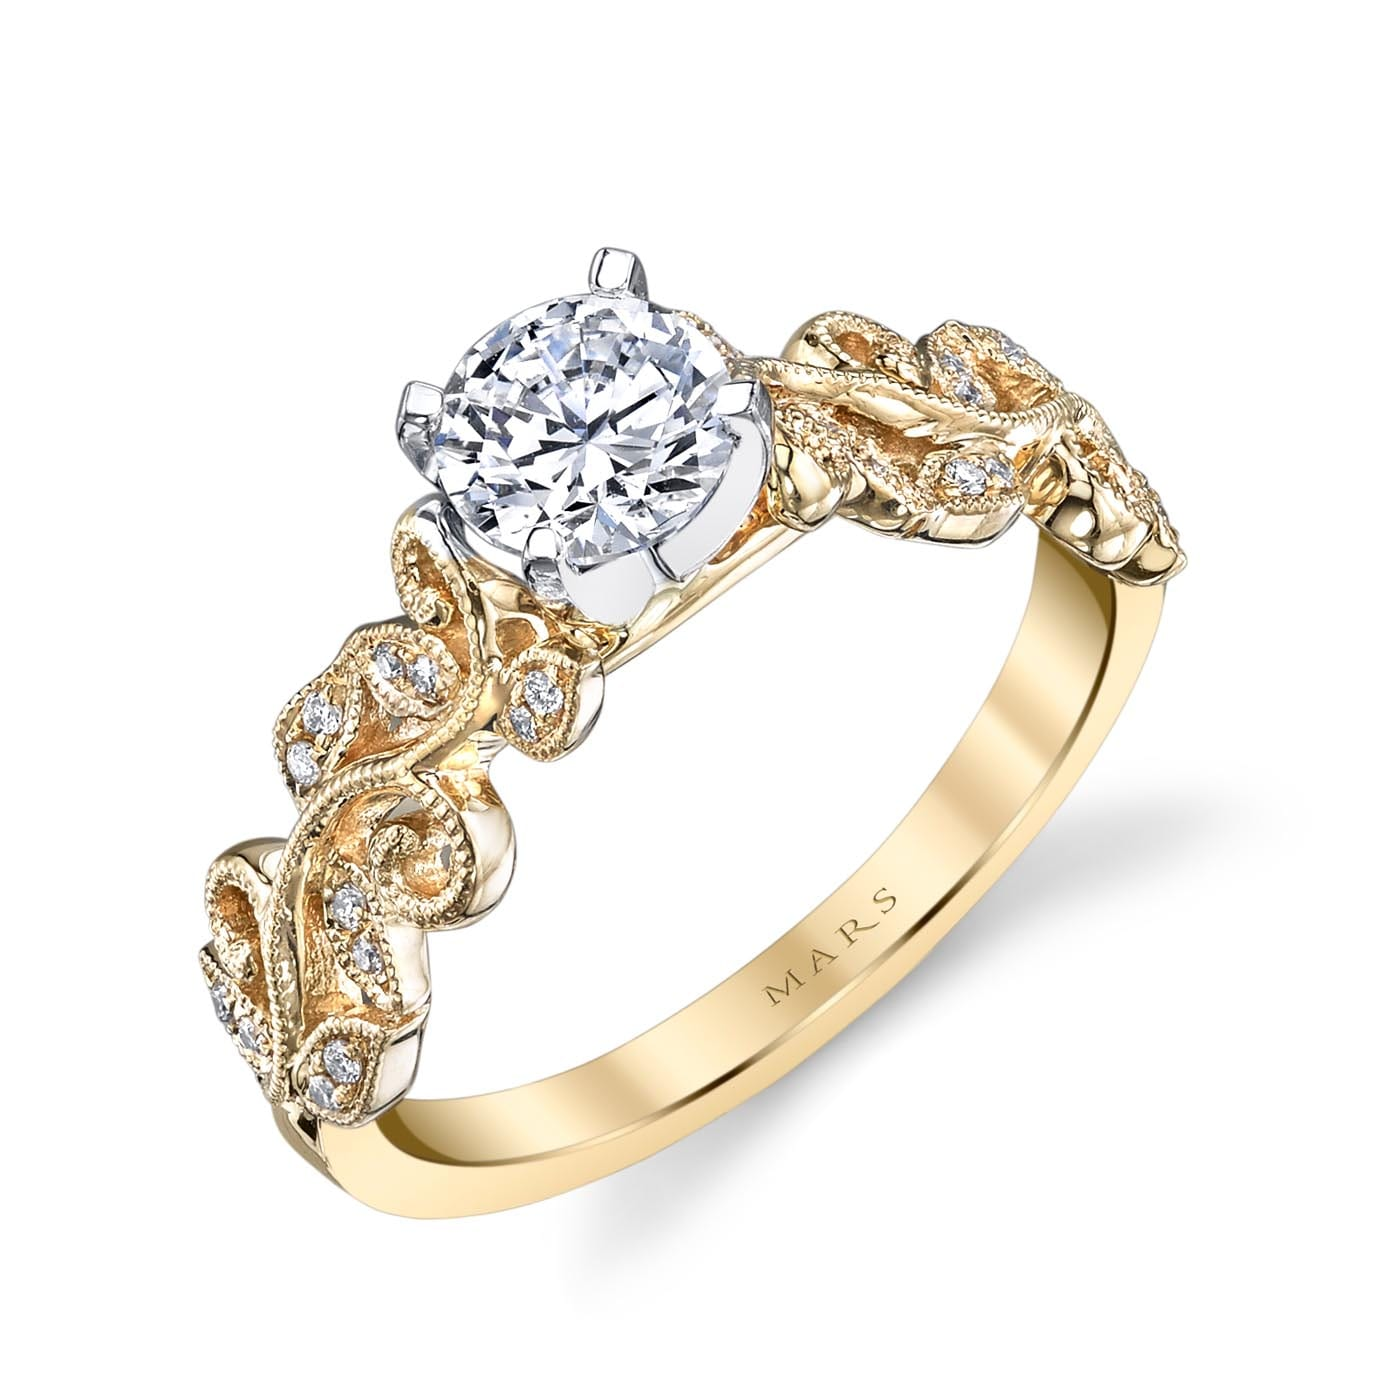 Floral Engagement RingStyle #: MARS 26504